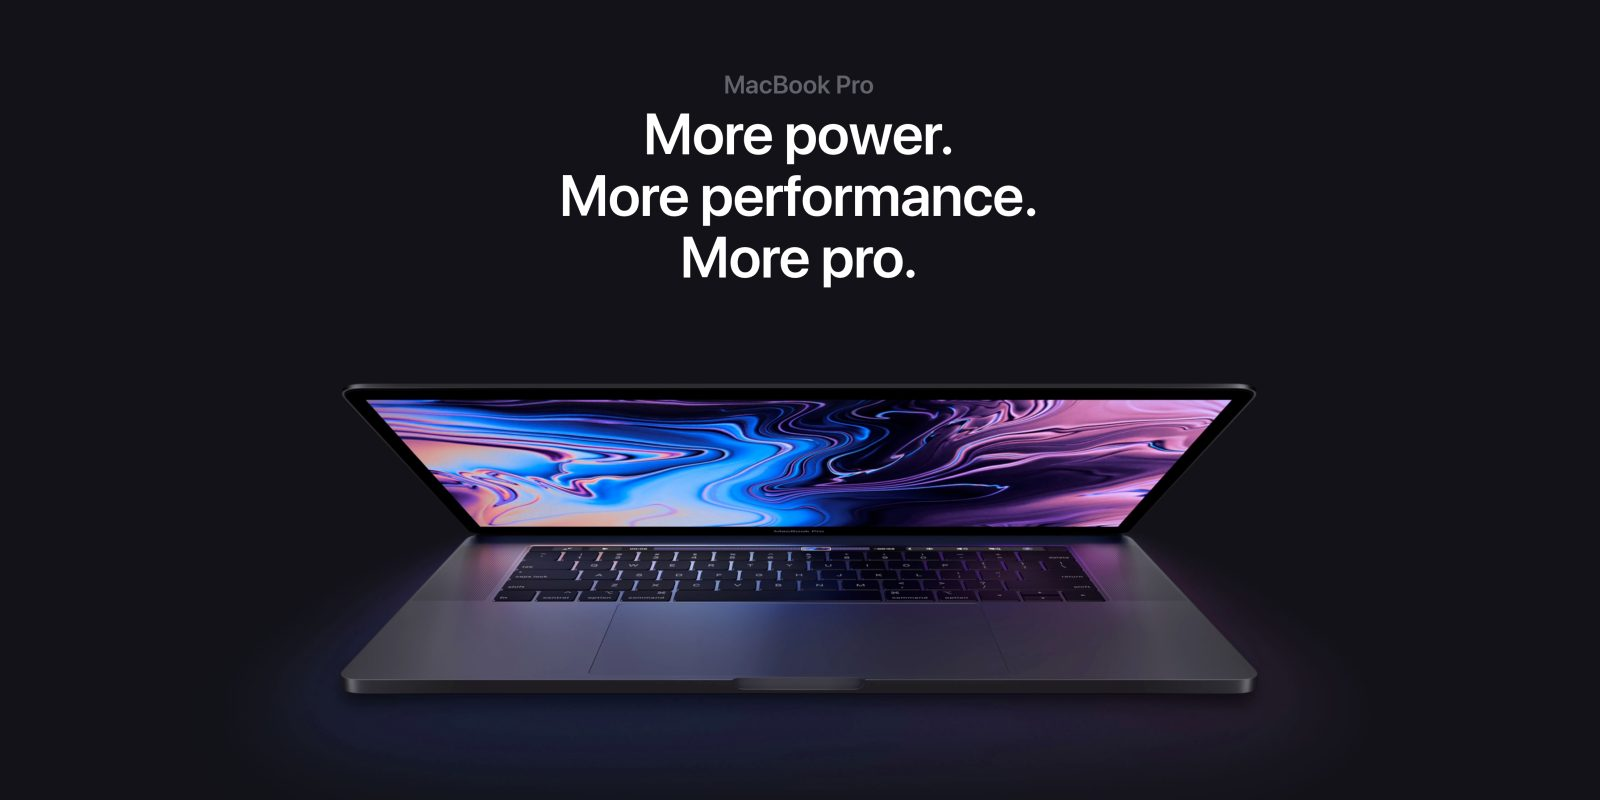 Take nearly $300 off Apple's latest 15-inch MacBook Pro